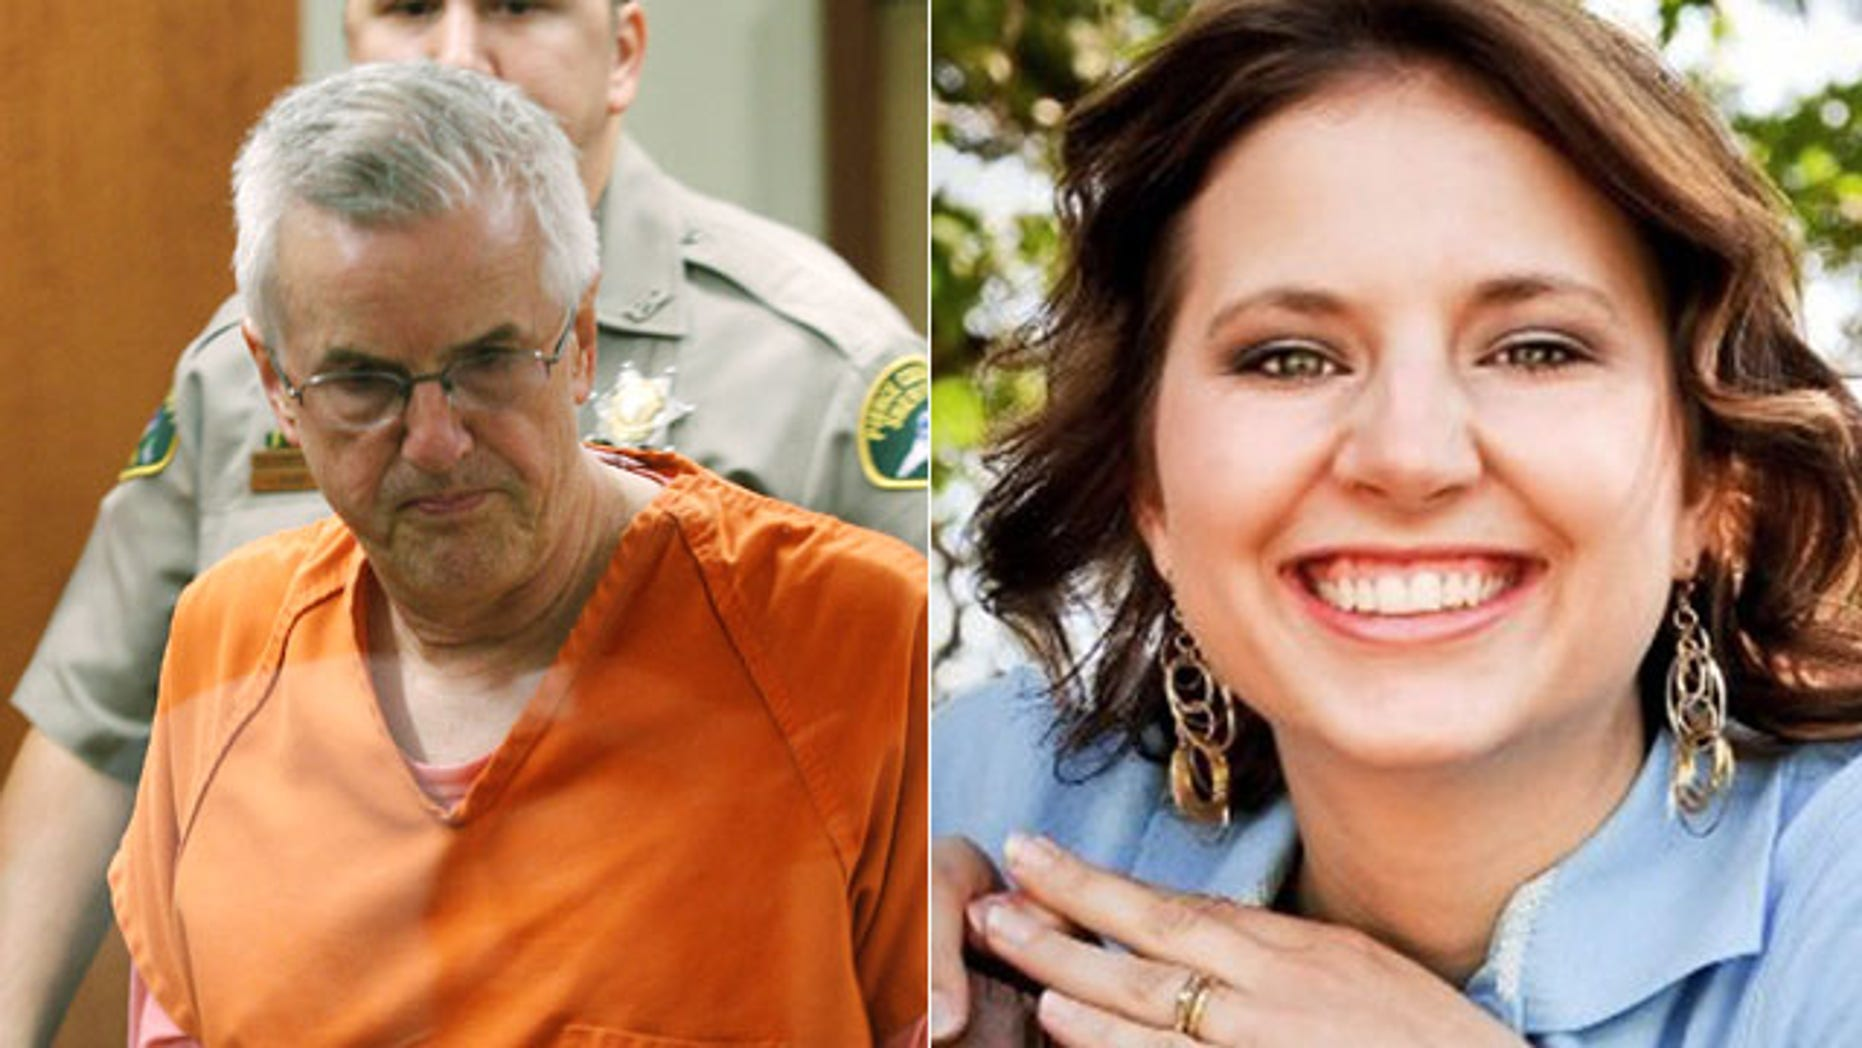 Steven Powell, 61, was arrested and accused of secretly videotaping Susan Powell, who has been missing since 2009, and young girls taking baths and sitting on the toilet next door, say authorities.